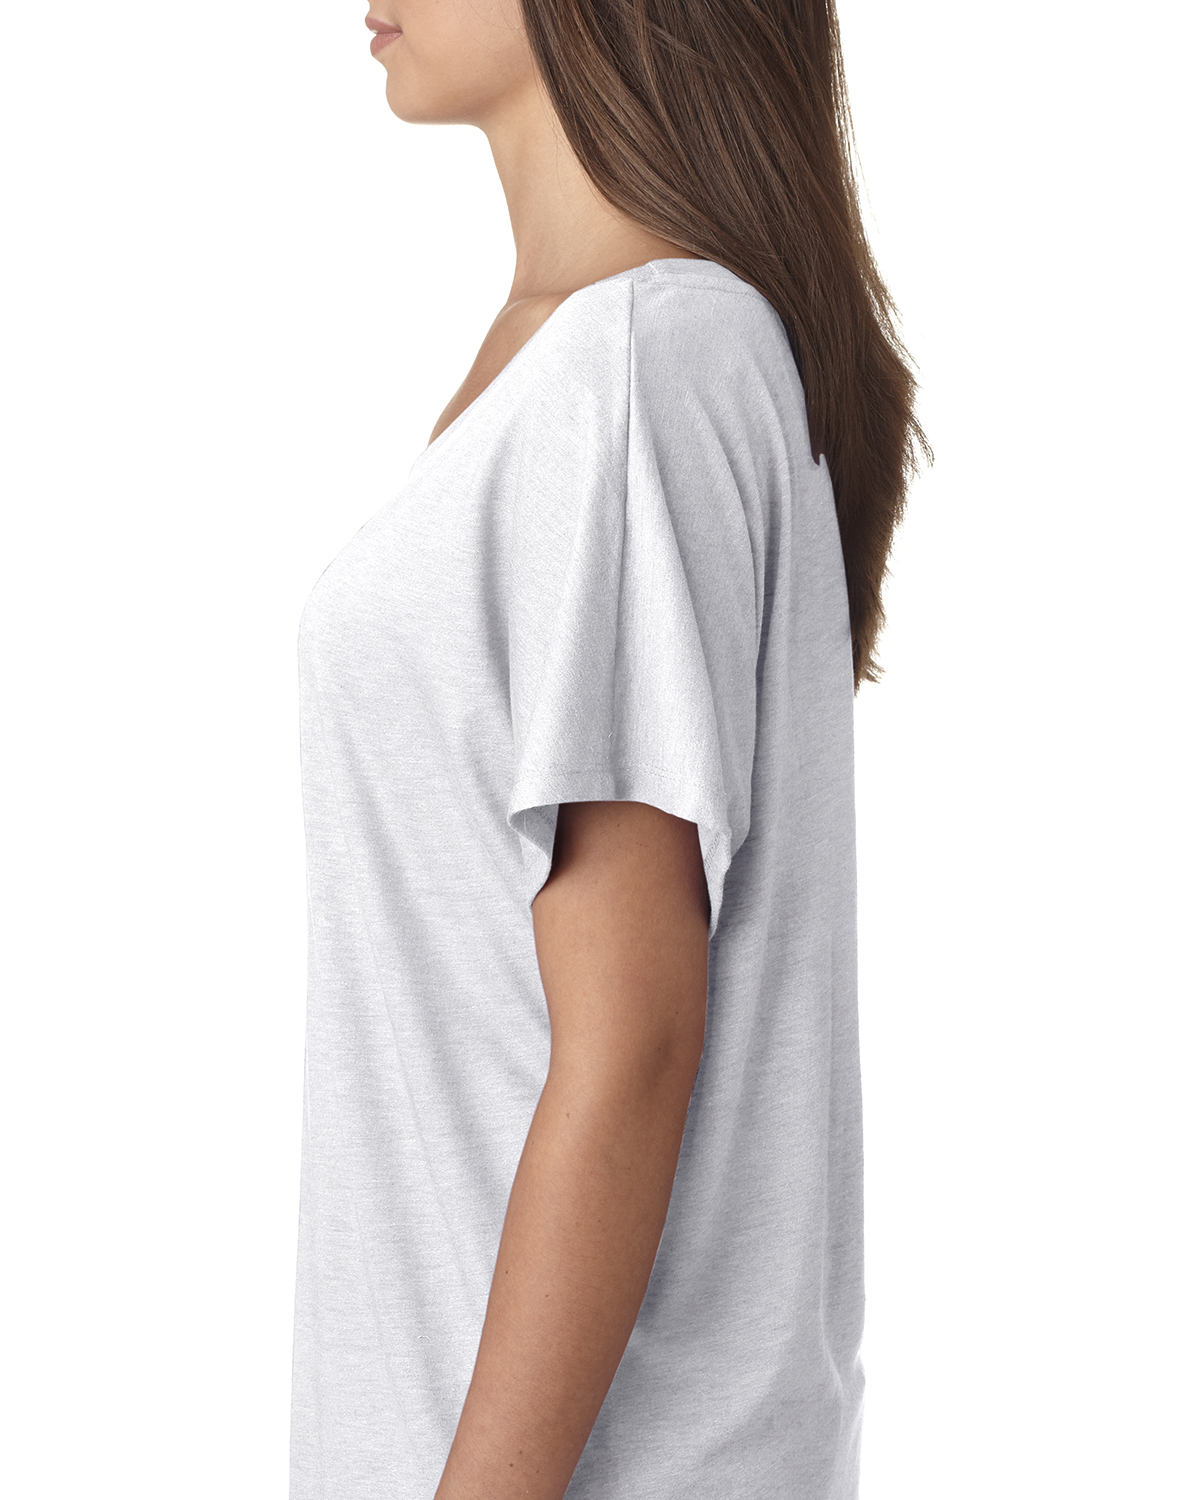 NEW-Next-Level-Junior-Fit-Triblend-Dolman-Sleeve-Relexed-Fit-T-Shirt-B-6760 thumbnail 7